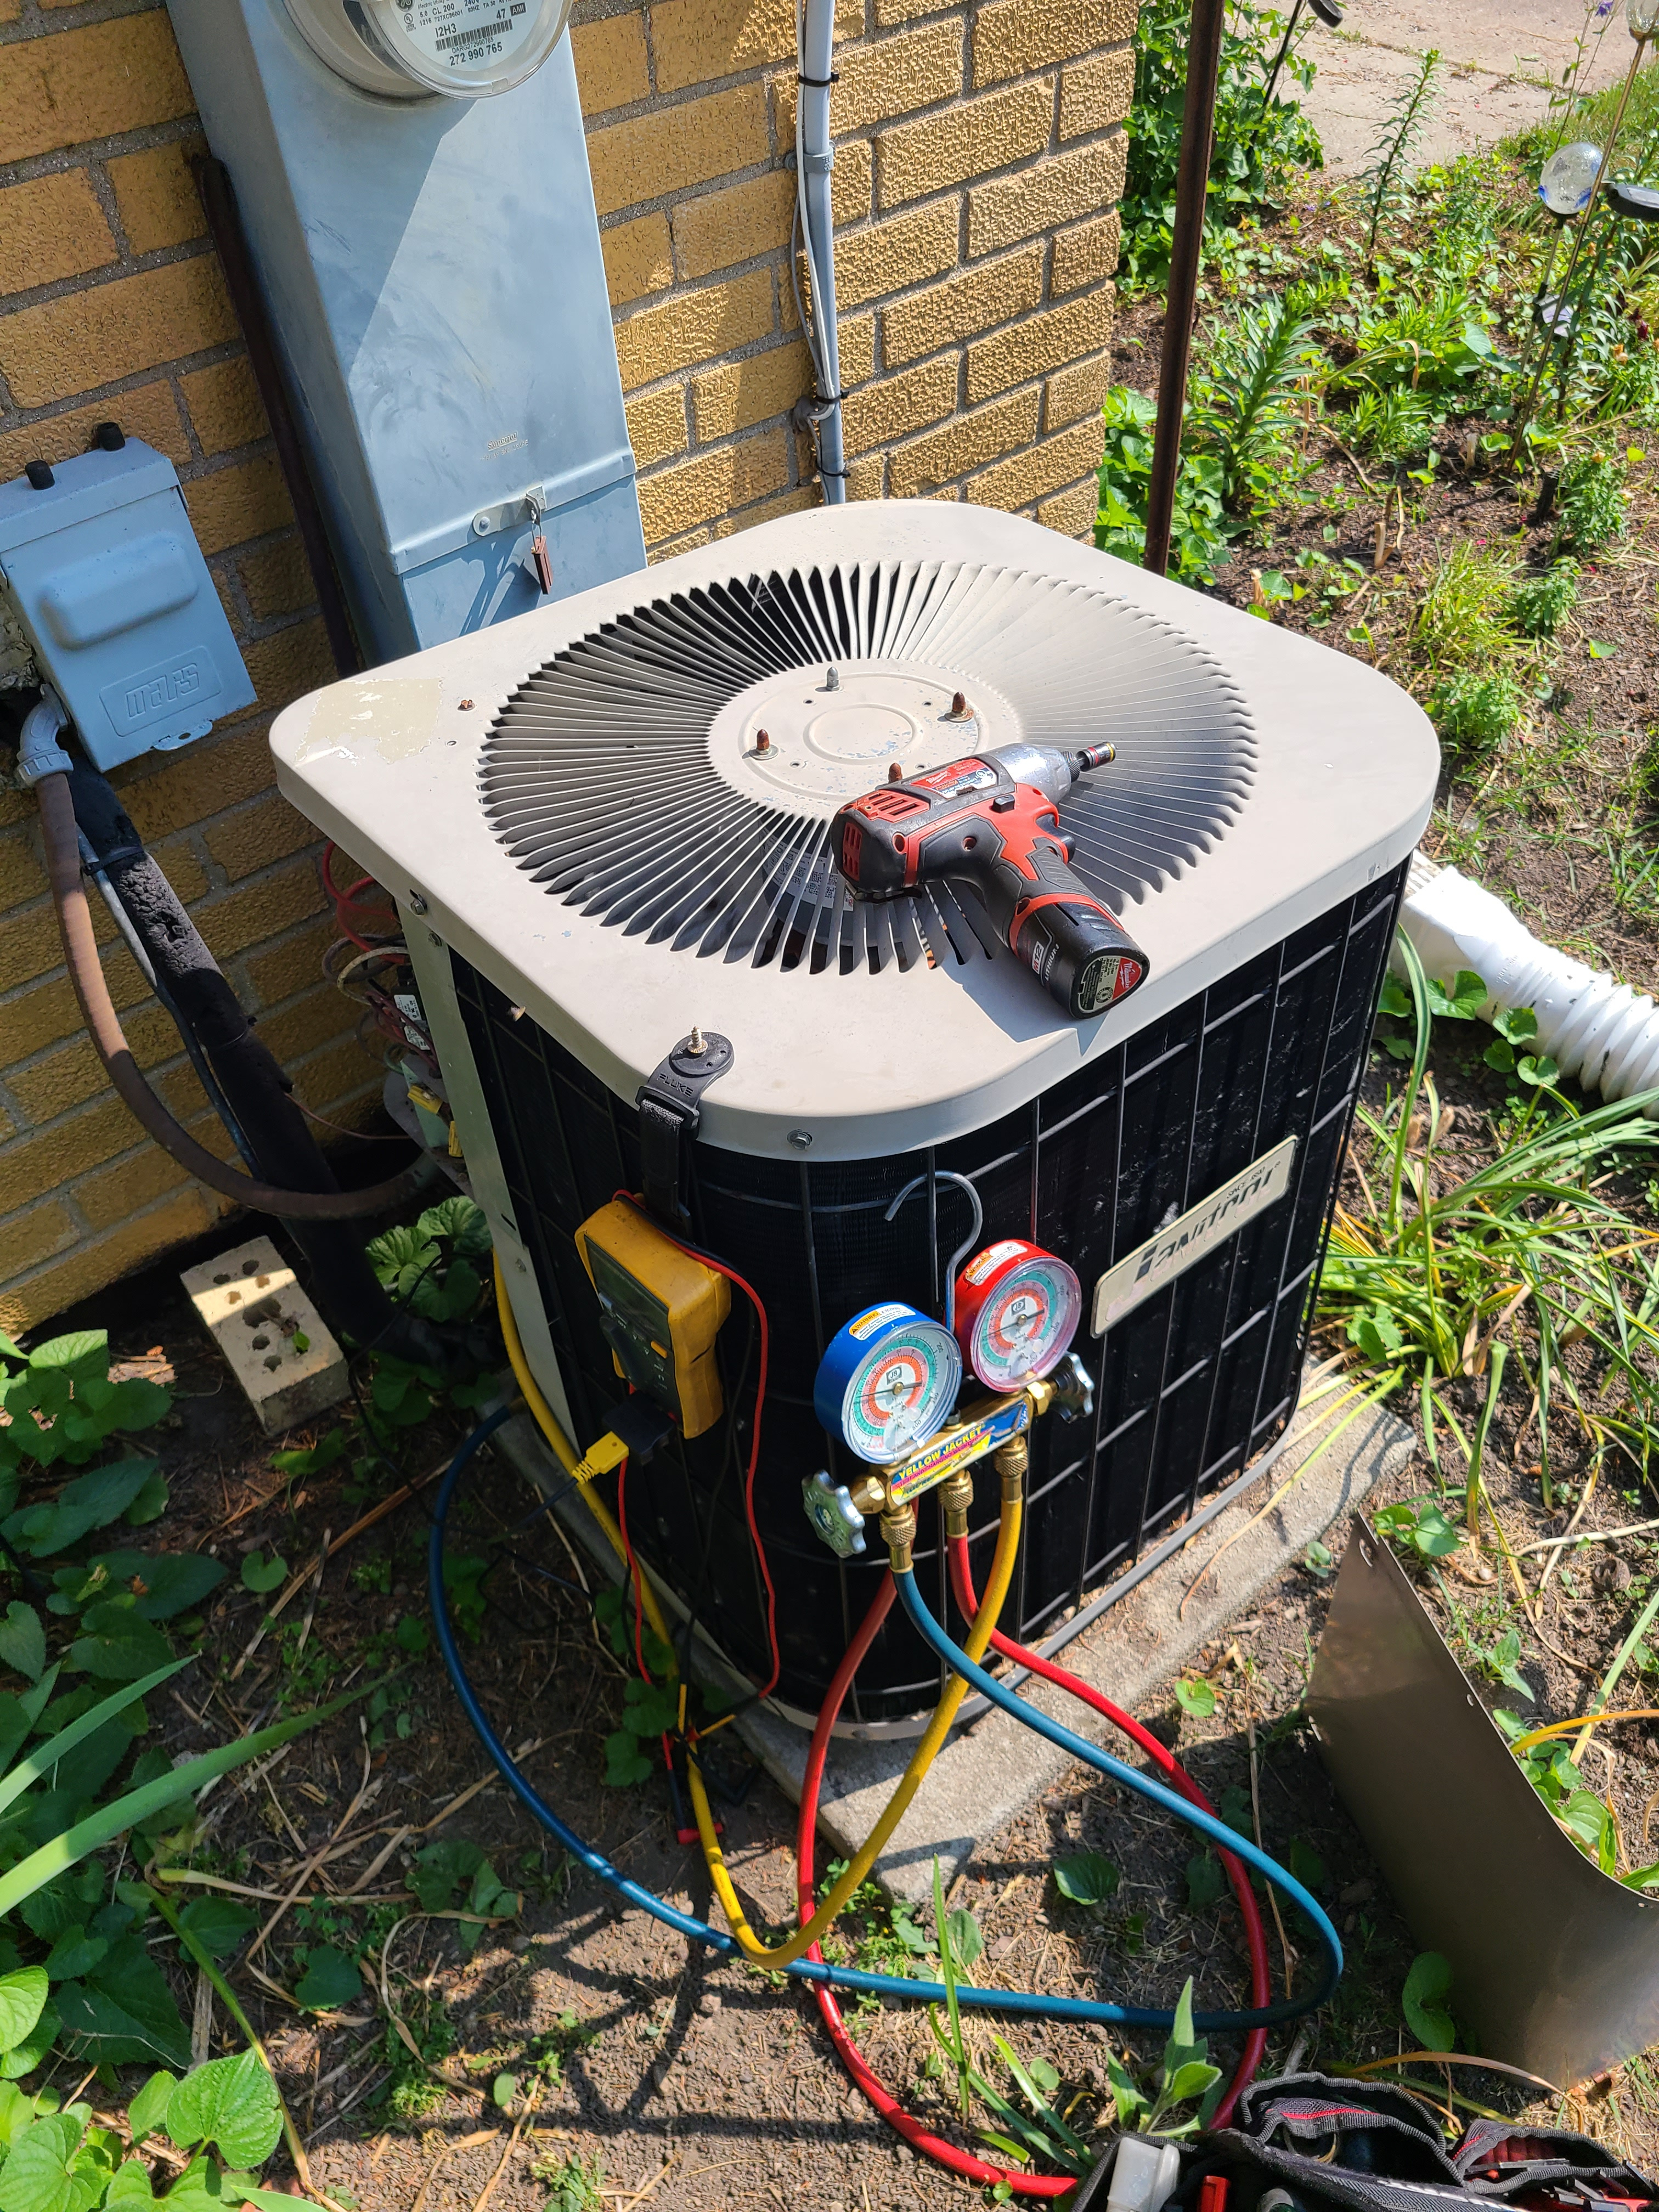 Janitrol summer ac clean and check.  System tuned up and ready for summer.